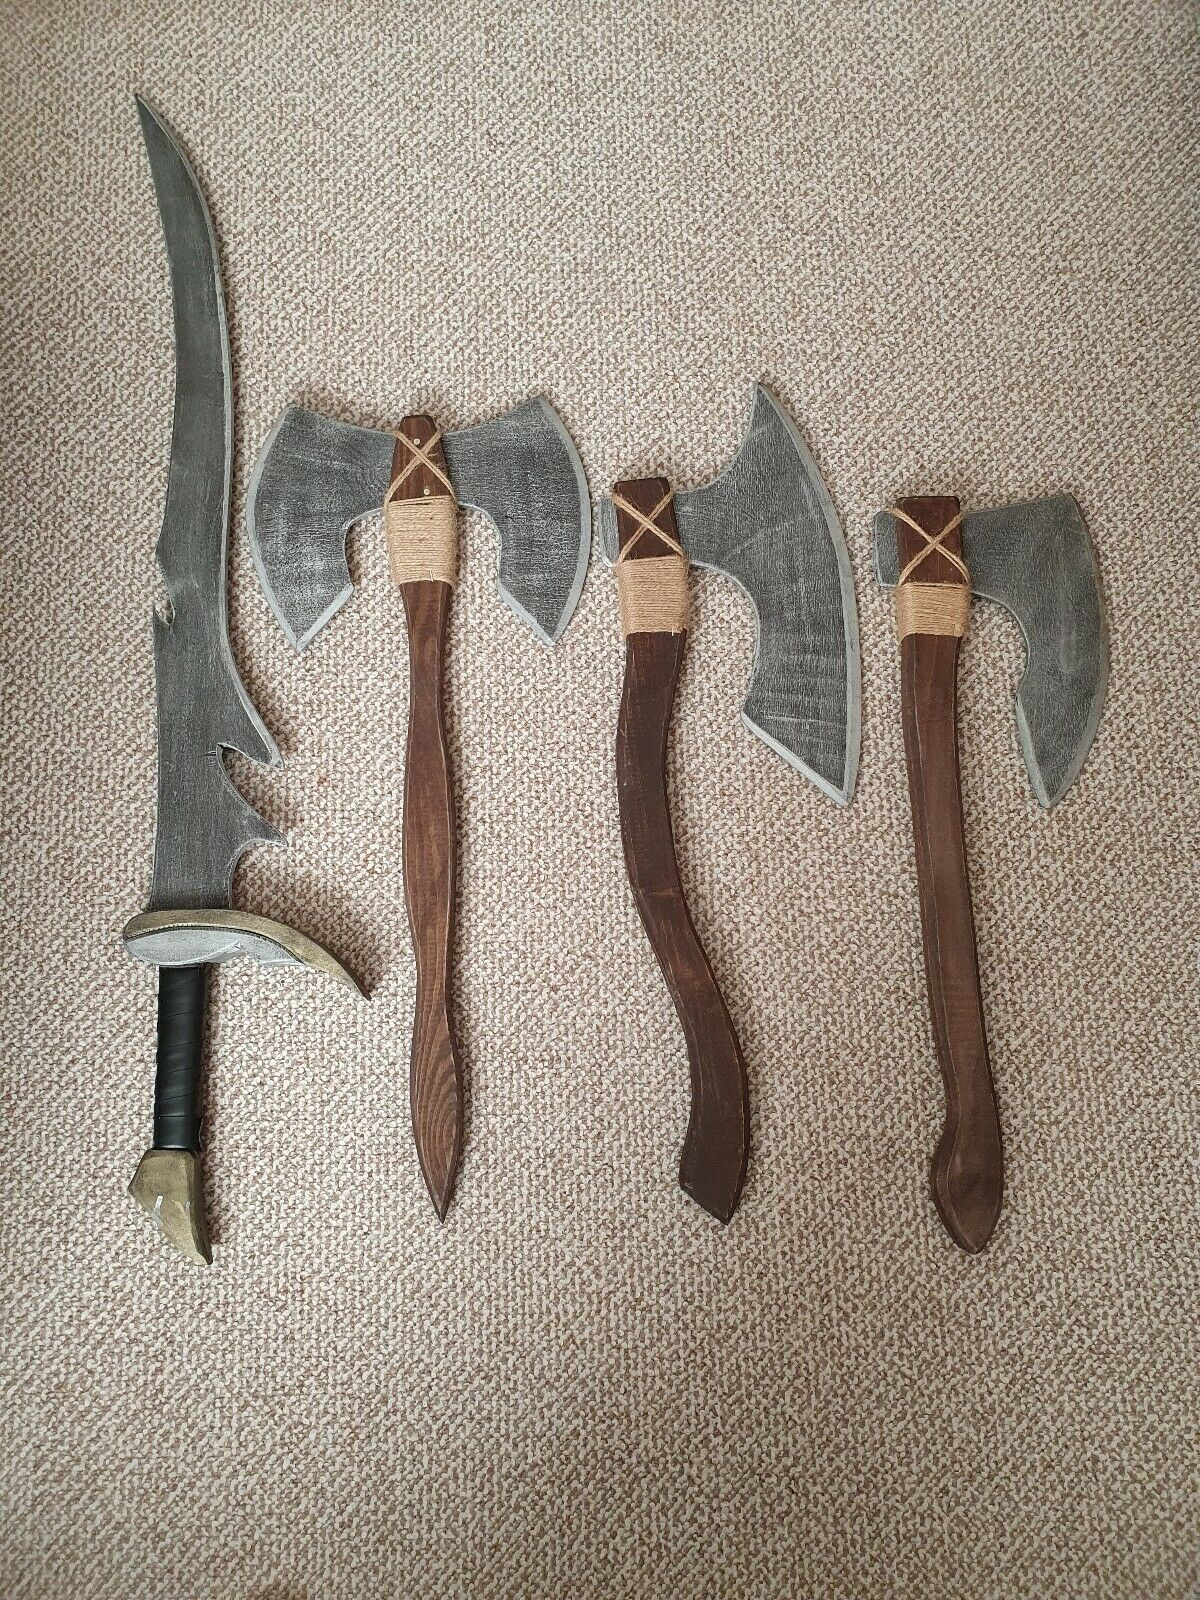 Wooden Sword And Axes Handmade